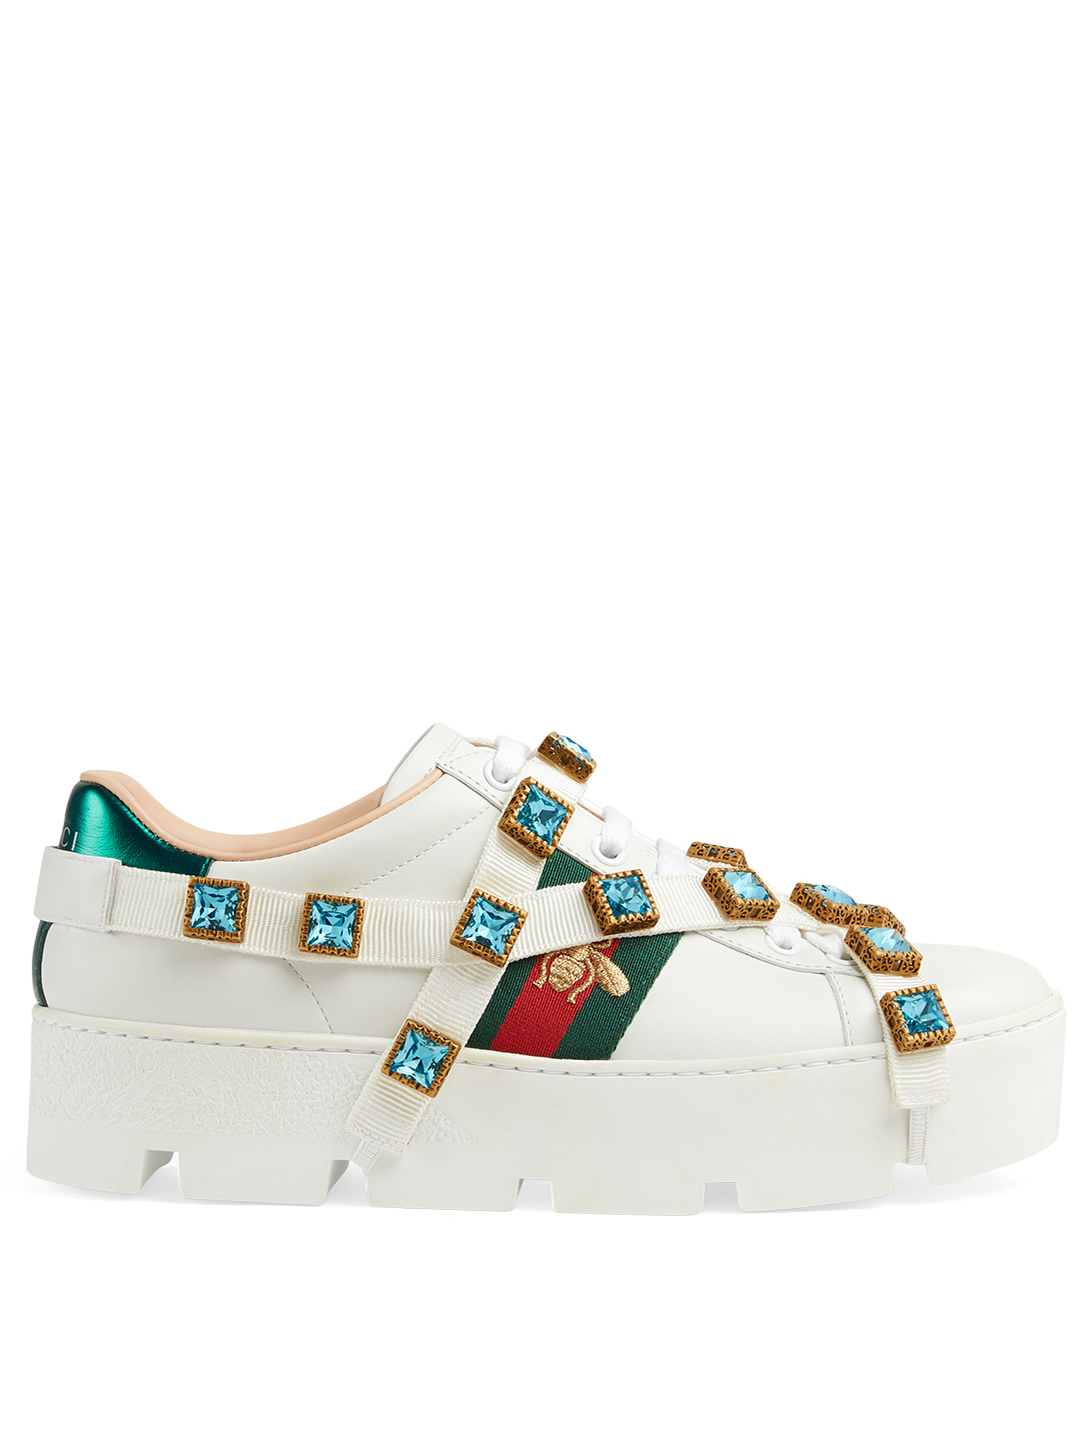 69e75449758 GUCCI Ace Leather Platform Sneaker with Removable Crystal Strap ...